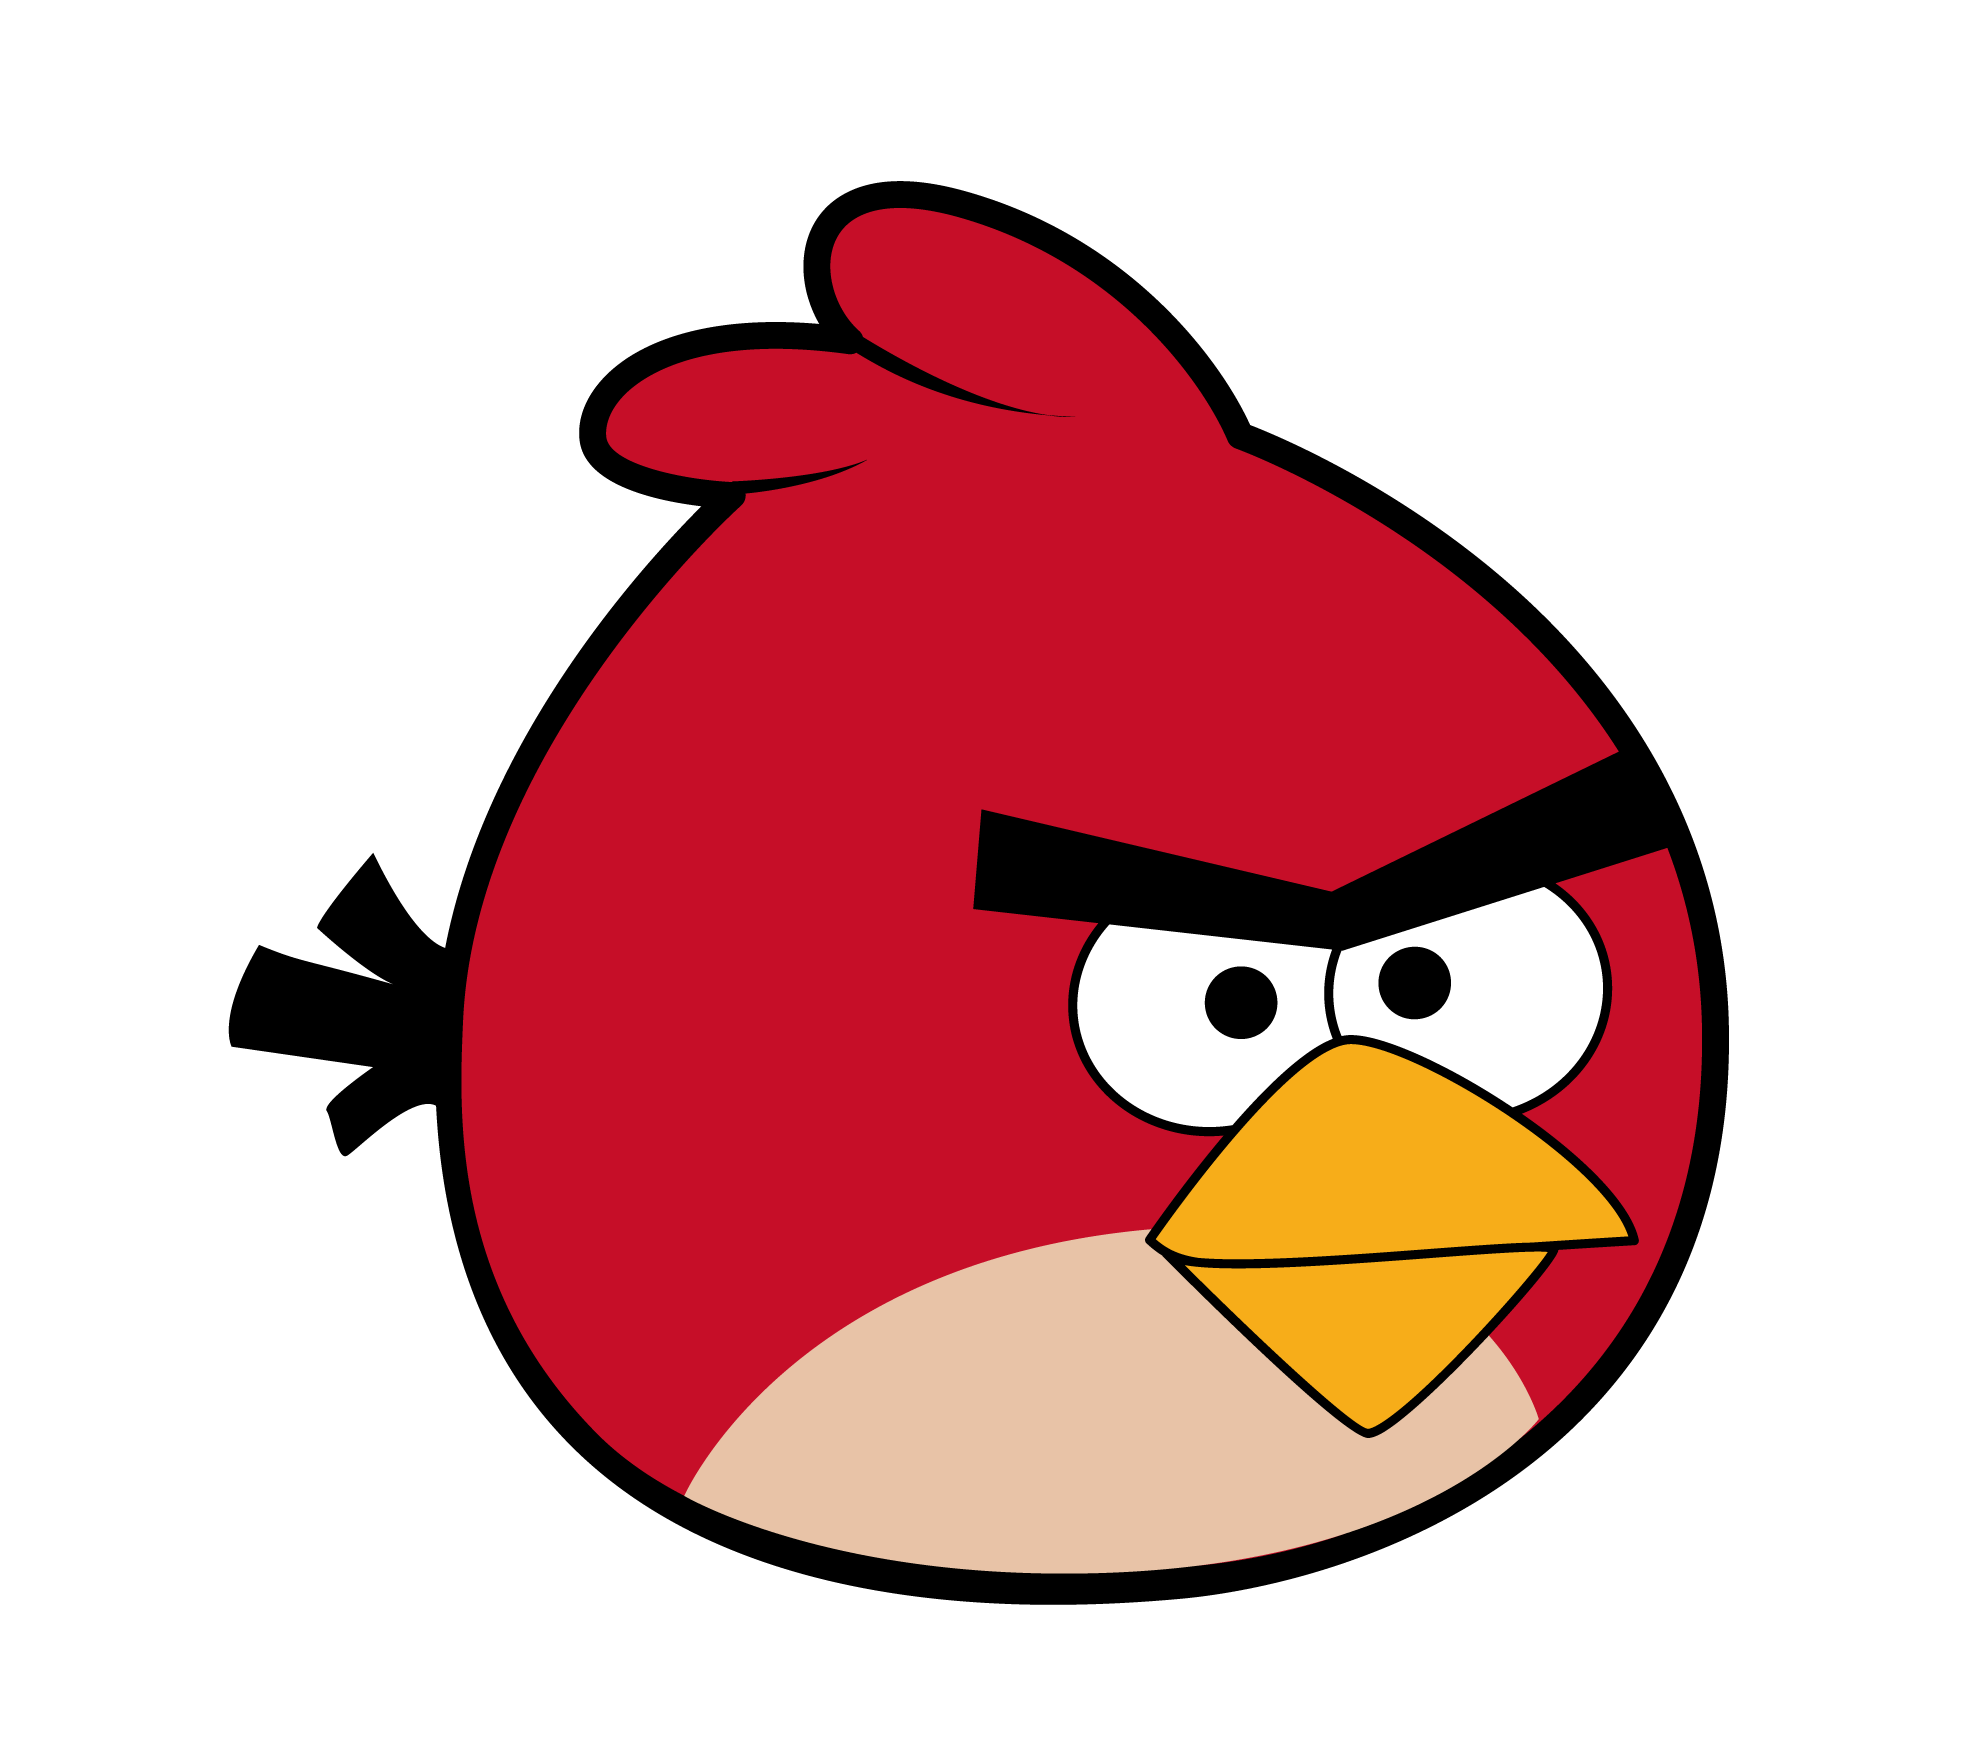 Clipart Bird Face Transparent FREE For Download